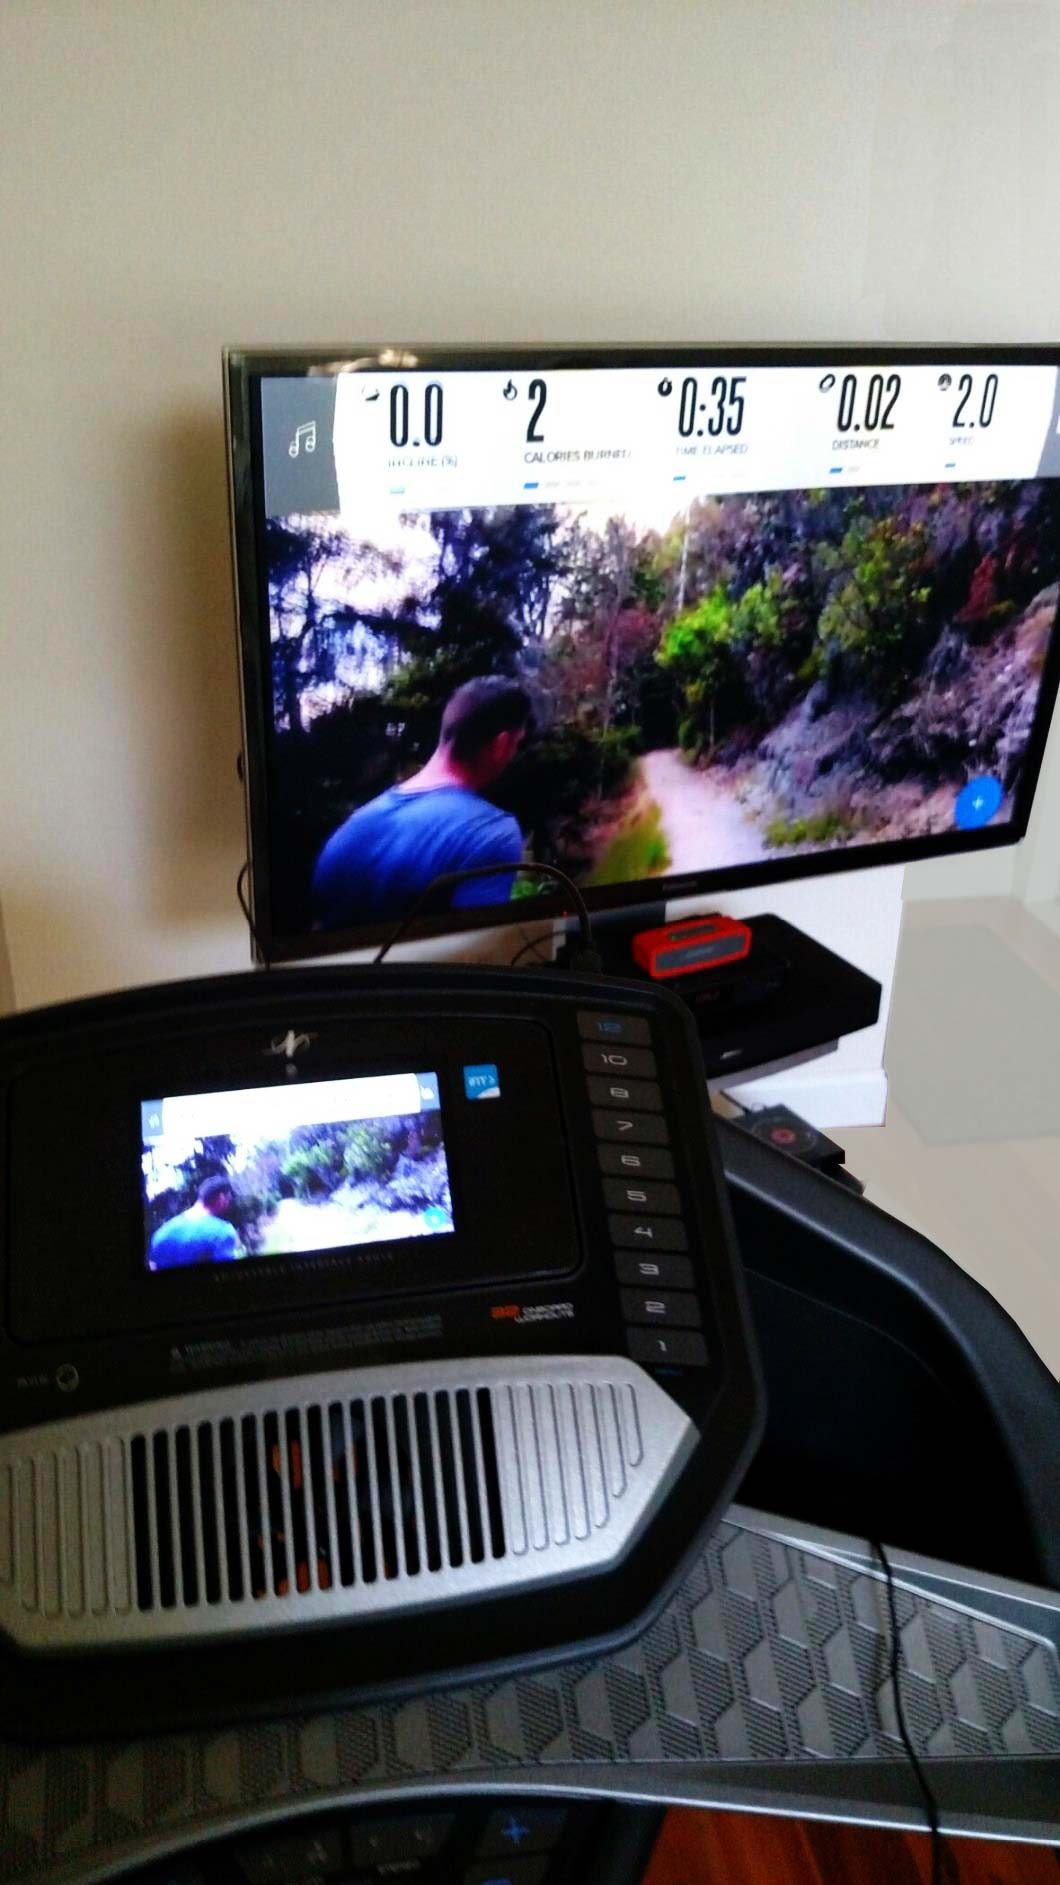 Project iFit workout or class using the external HDMI port. Above uses sound bar to enhance audio